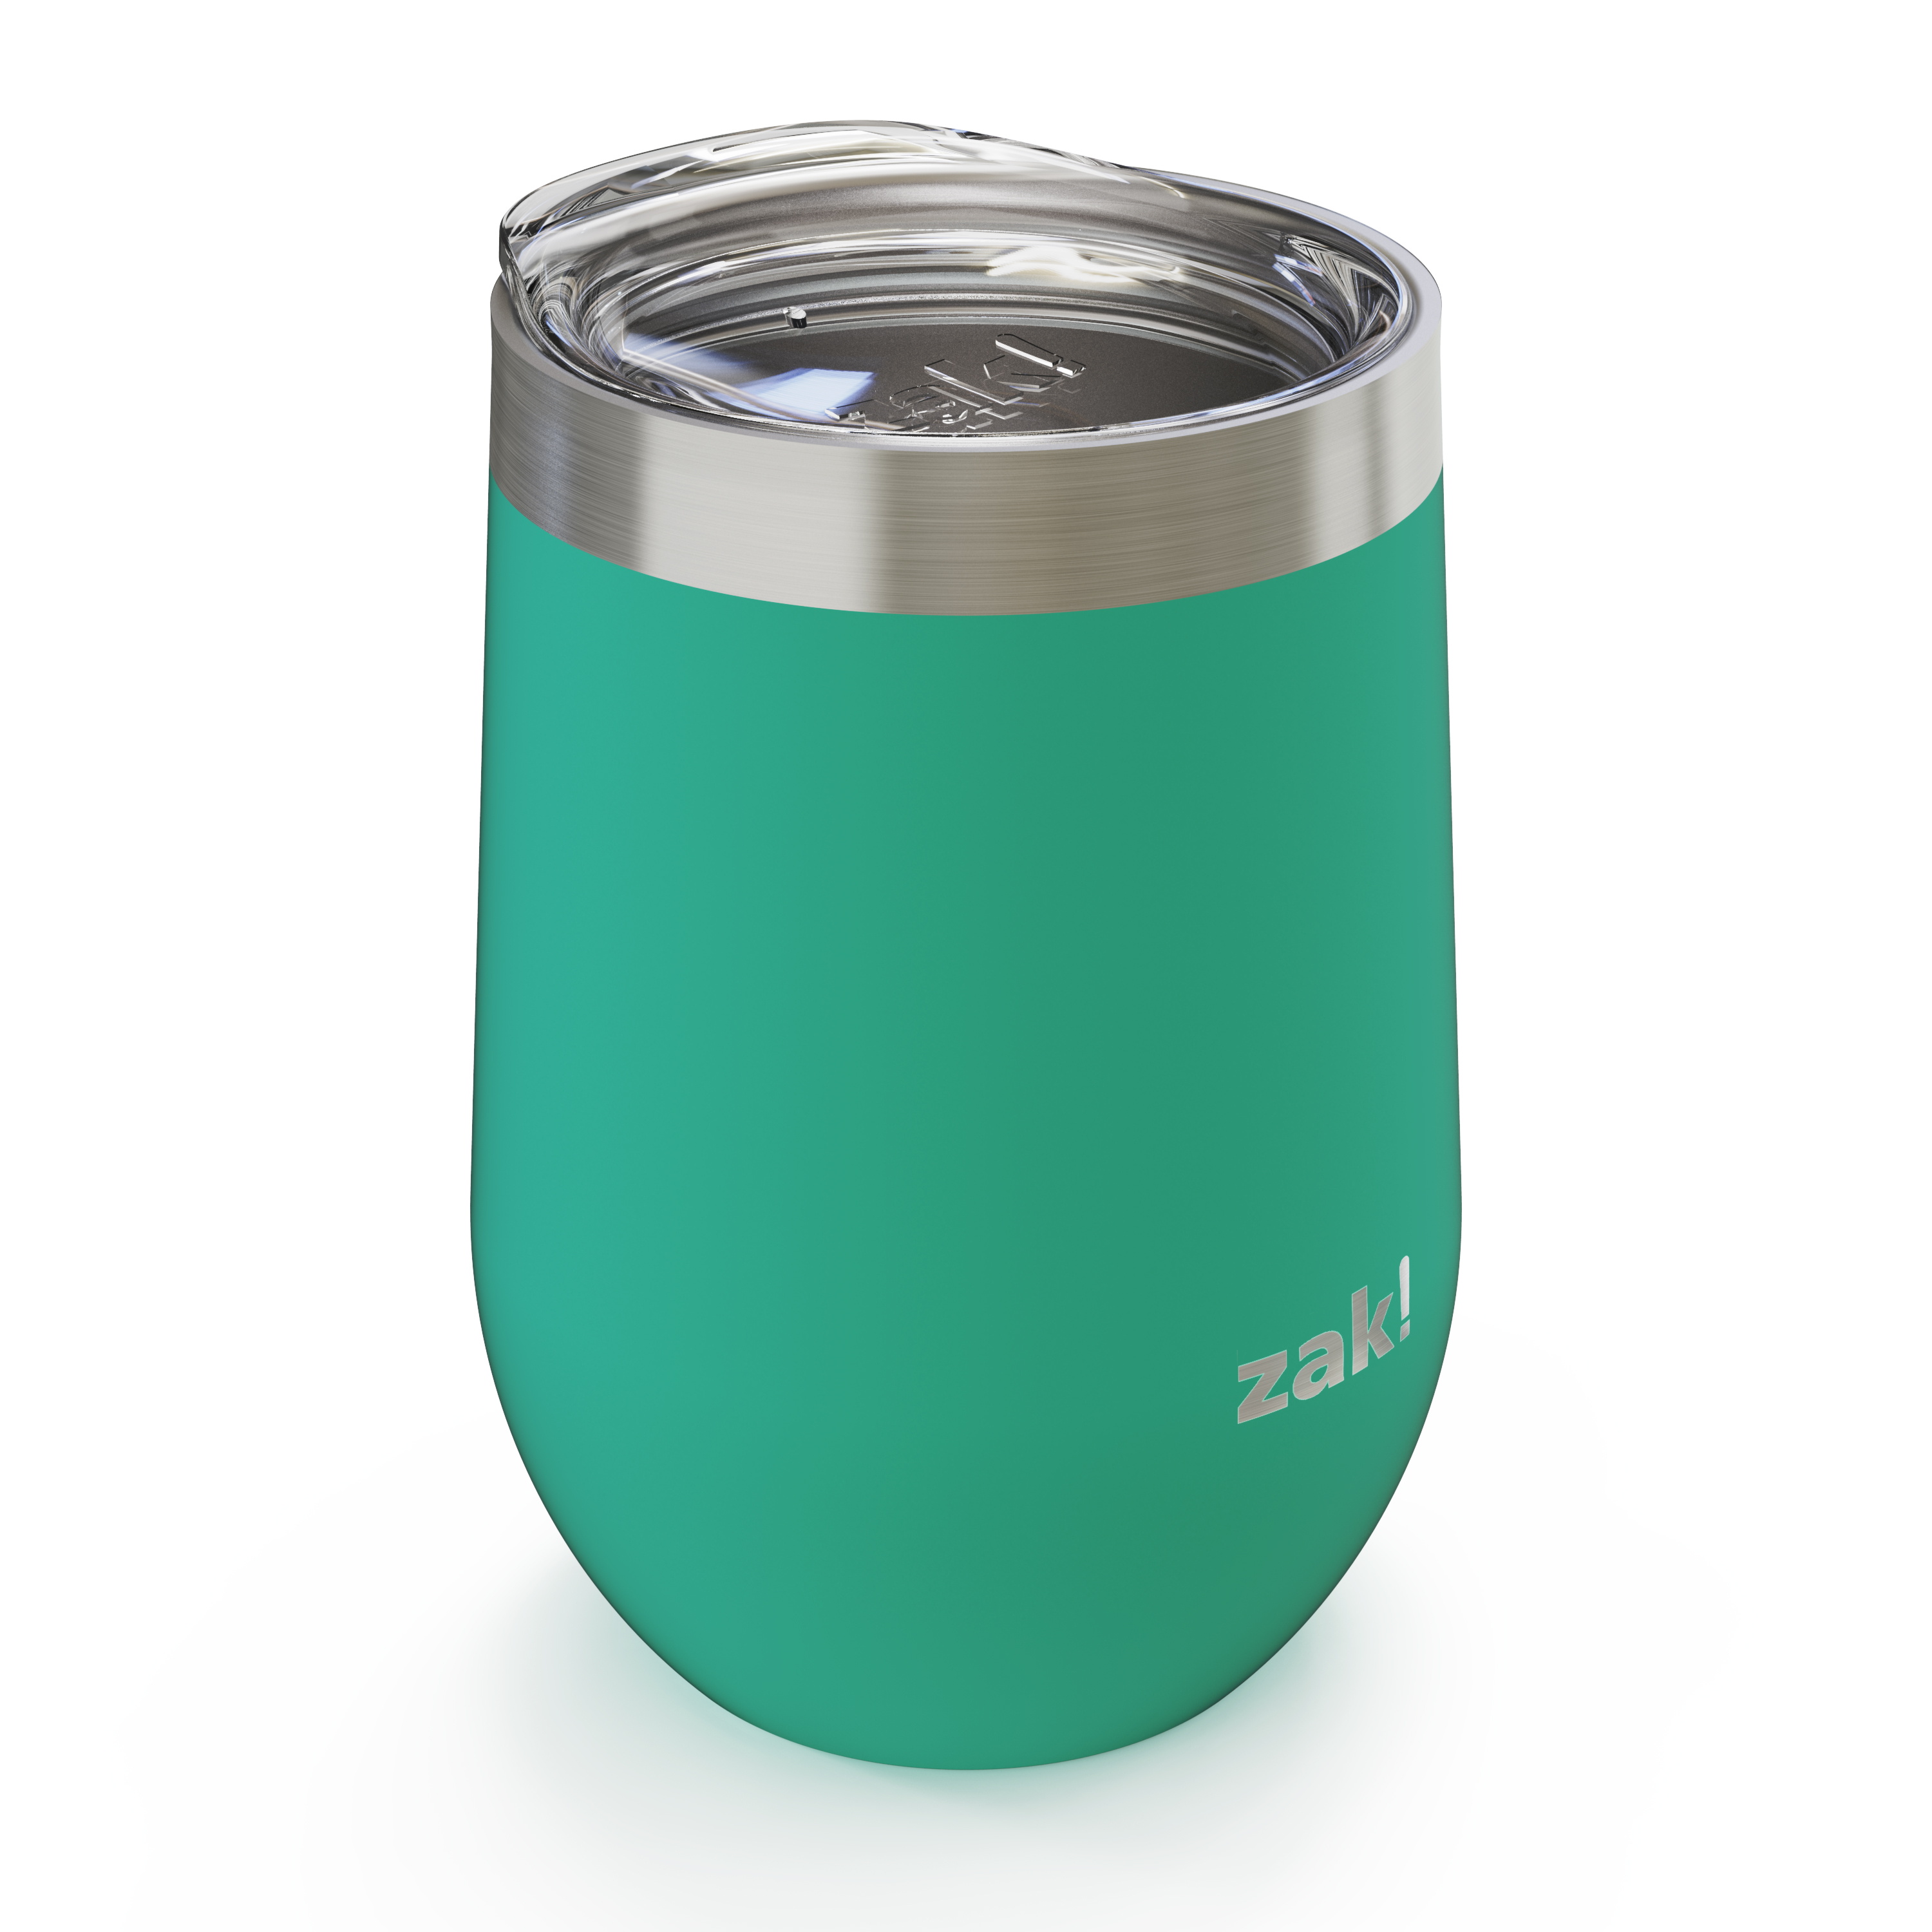 Zak-Stainless-Steel-Double-Wall-Insulated-Spill-Proof-Lid-11-5-oz-Wine-Tumbler thumbnail 6